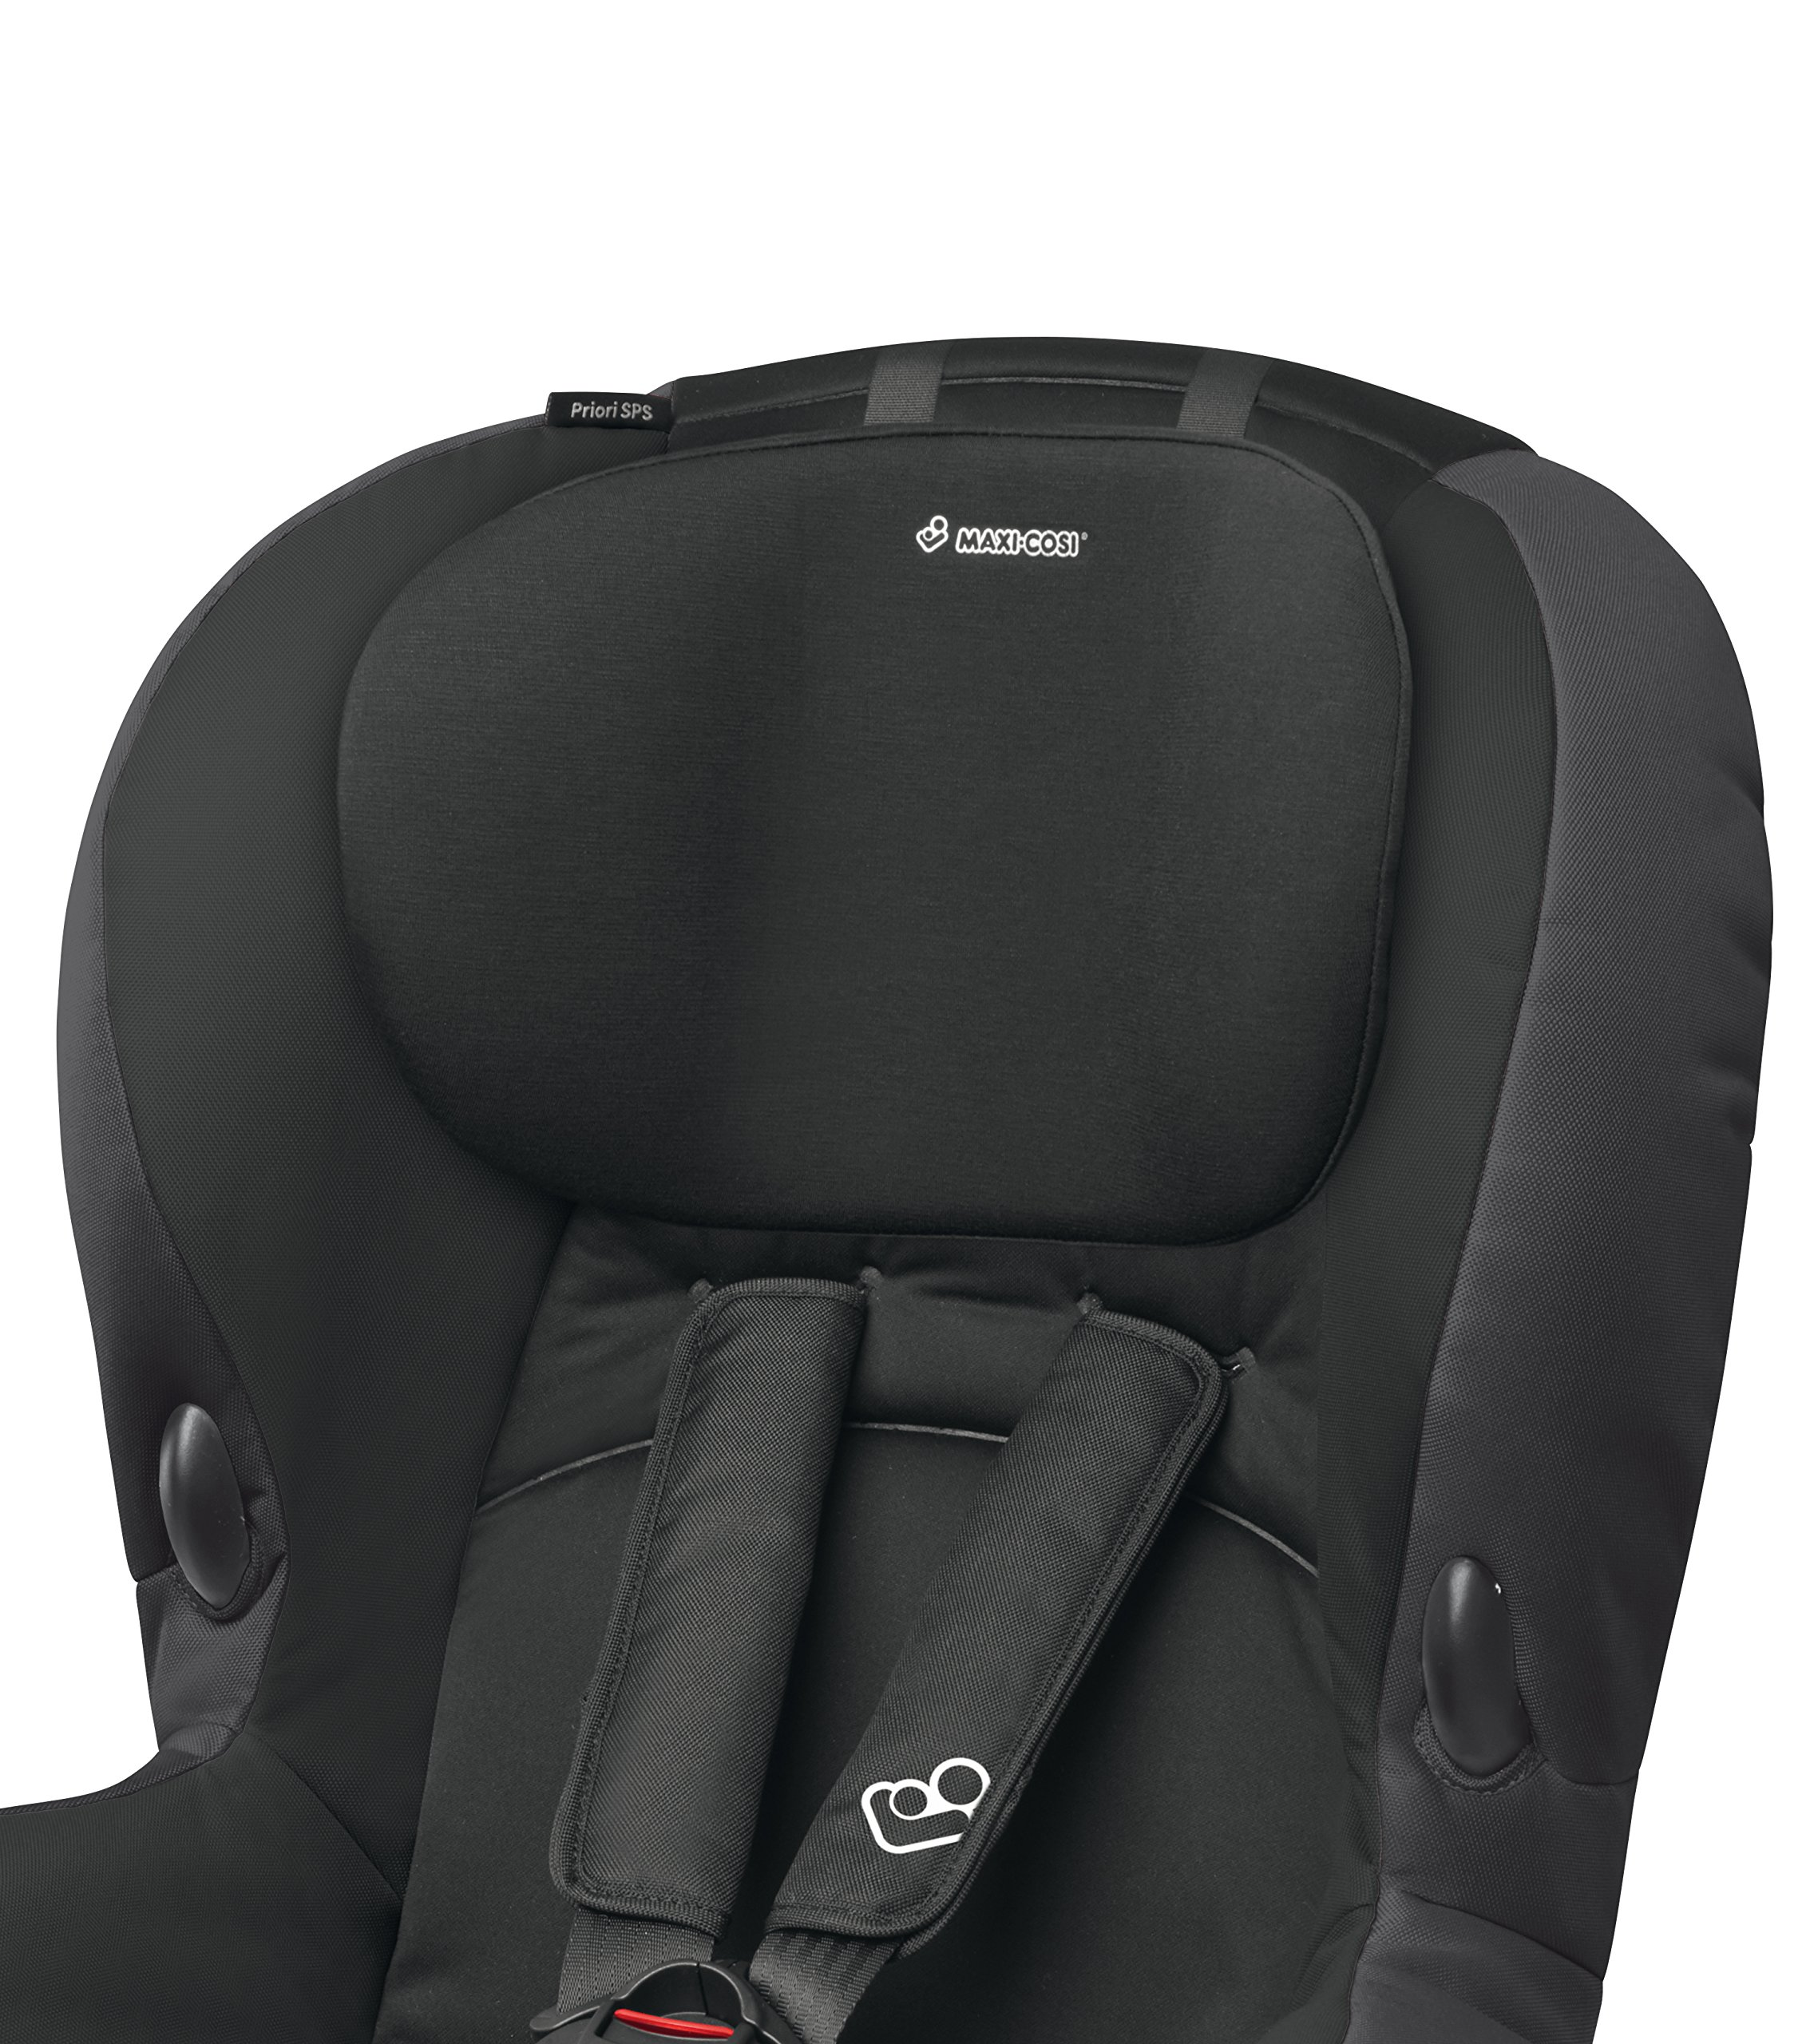 Maxi-Cosi Priori SPS Toddler Car Seat with Side Protection System, 9 Months - 4 Years, 9-18 kg, Slate Black Maxi-Cosi Forward facing group 1 car seat suitable for toddlers from 9 to 18 kg (approximately 9 months to 4 years old) Easy to install with regular 3-point safety belt Side protection system (offers optimal protection against side impact) 3